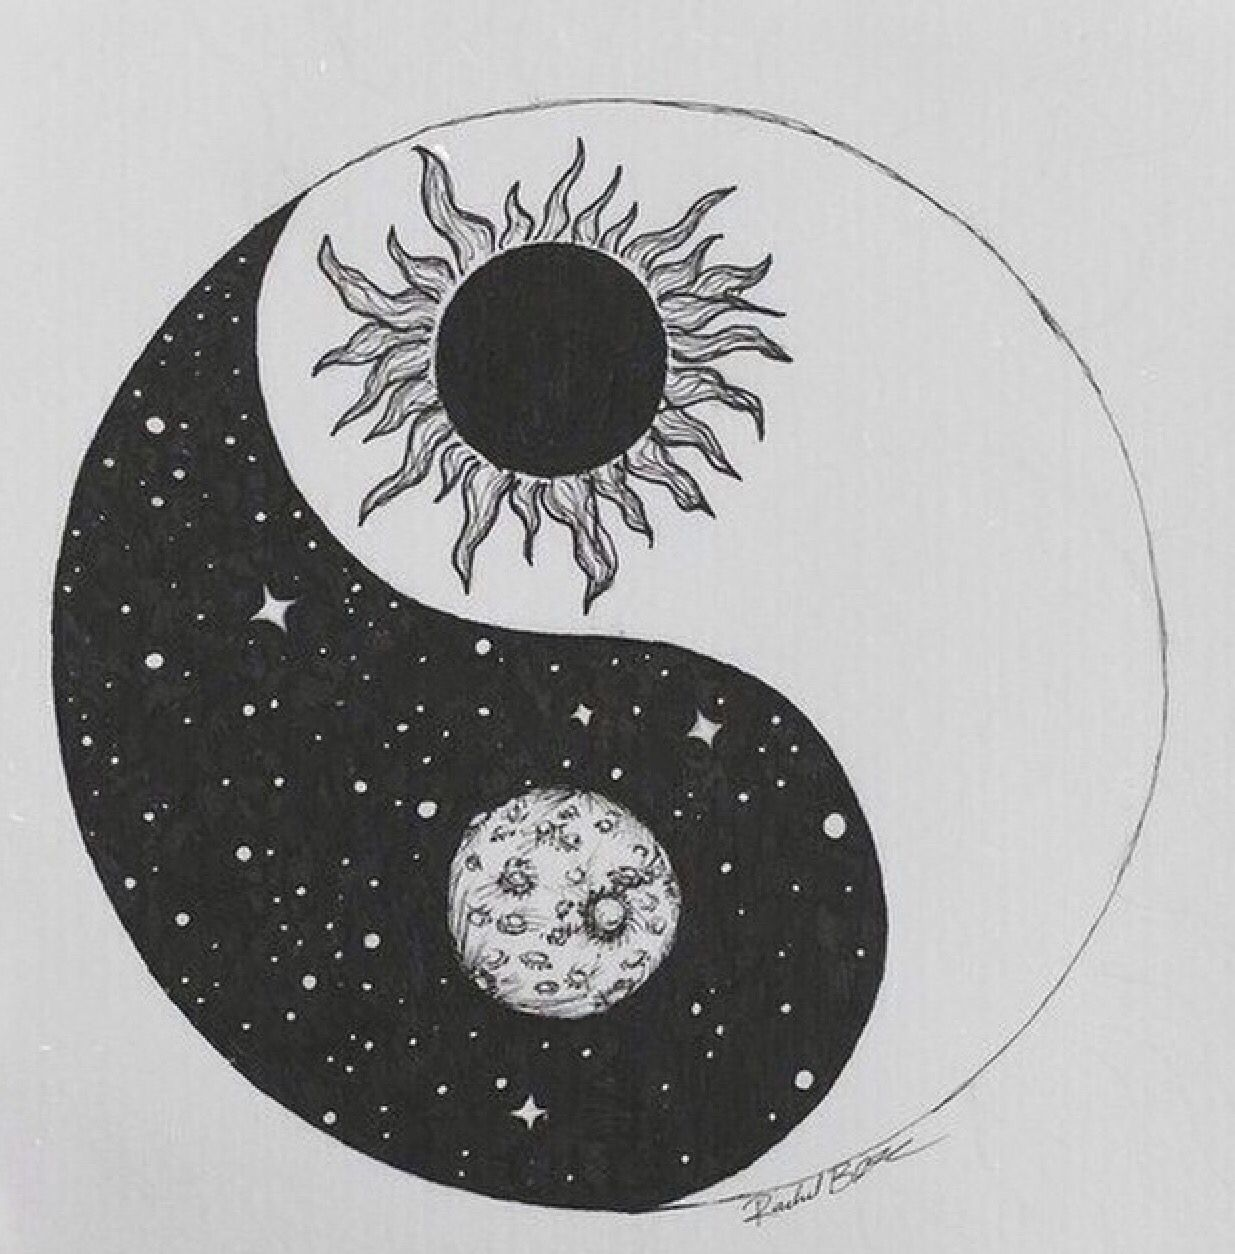 Moon Sun Yin And Yang Tattoos I Want In 2019 Tattoos Yin